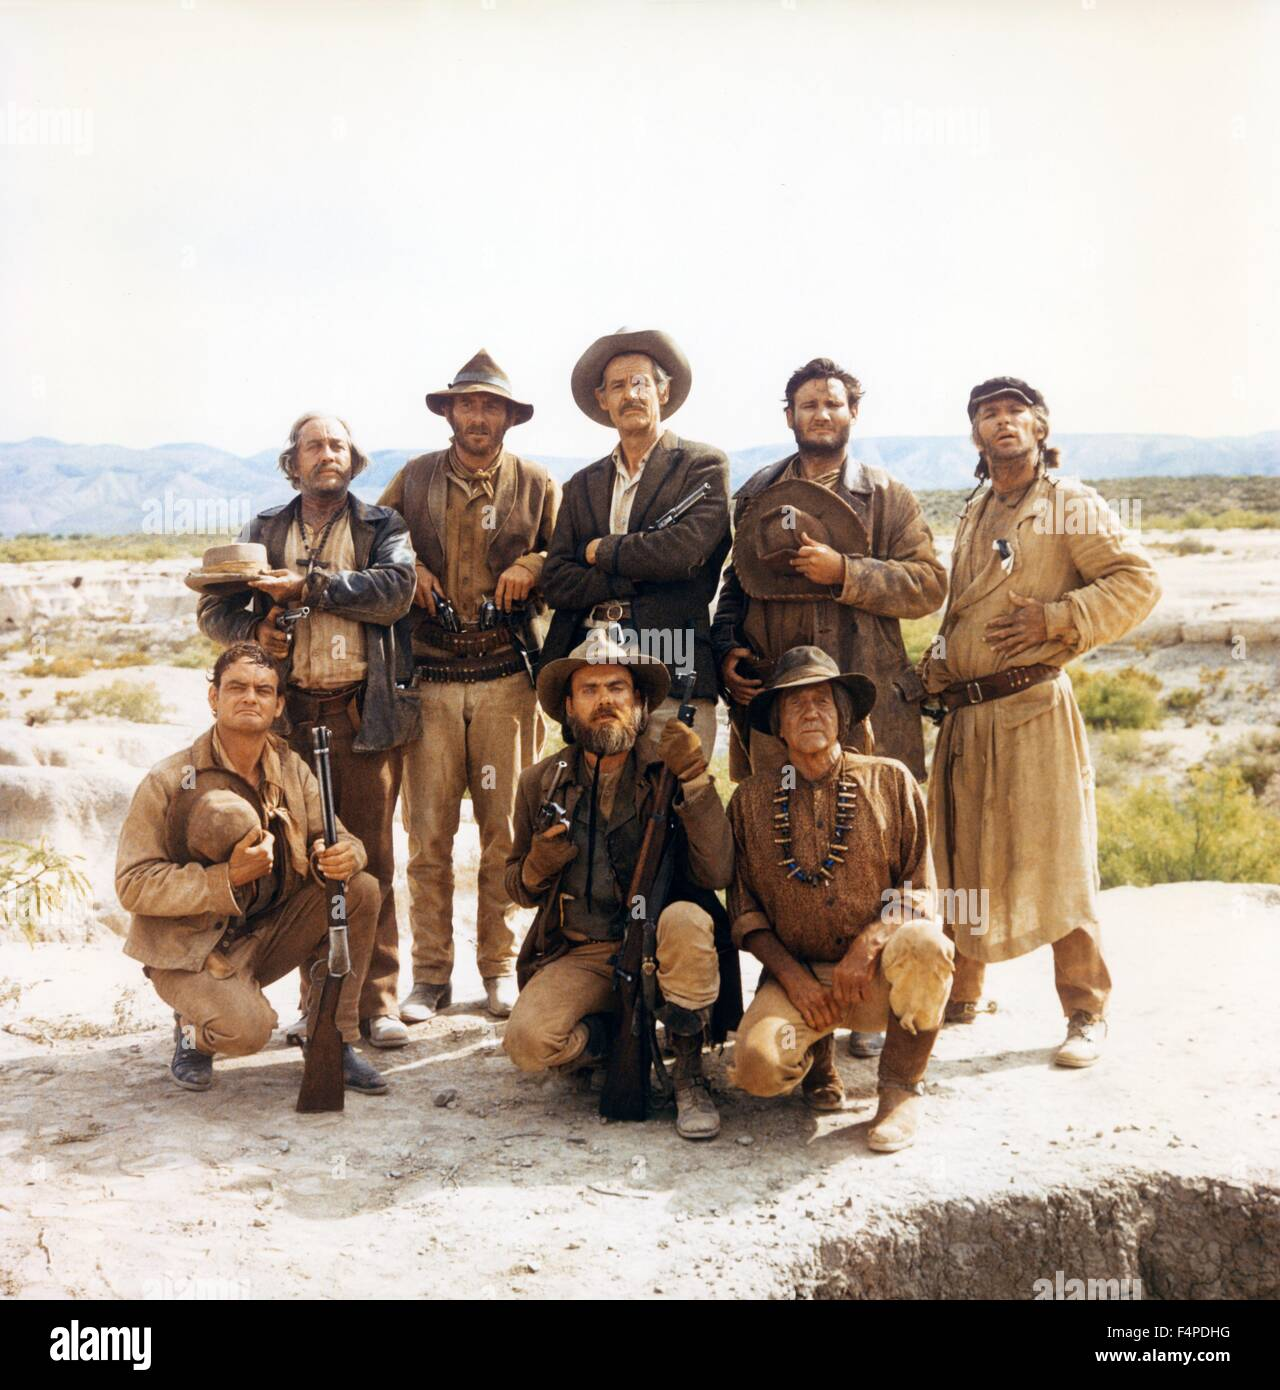 Robert Ryan / The Wild Bunch 1969 réalisé par Sam Peckinpah Photo Stock